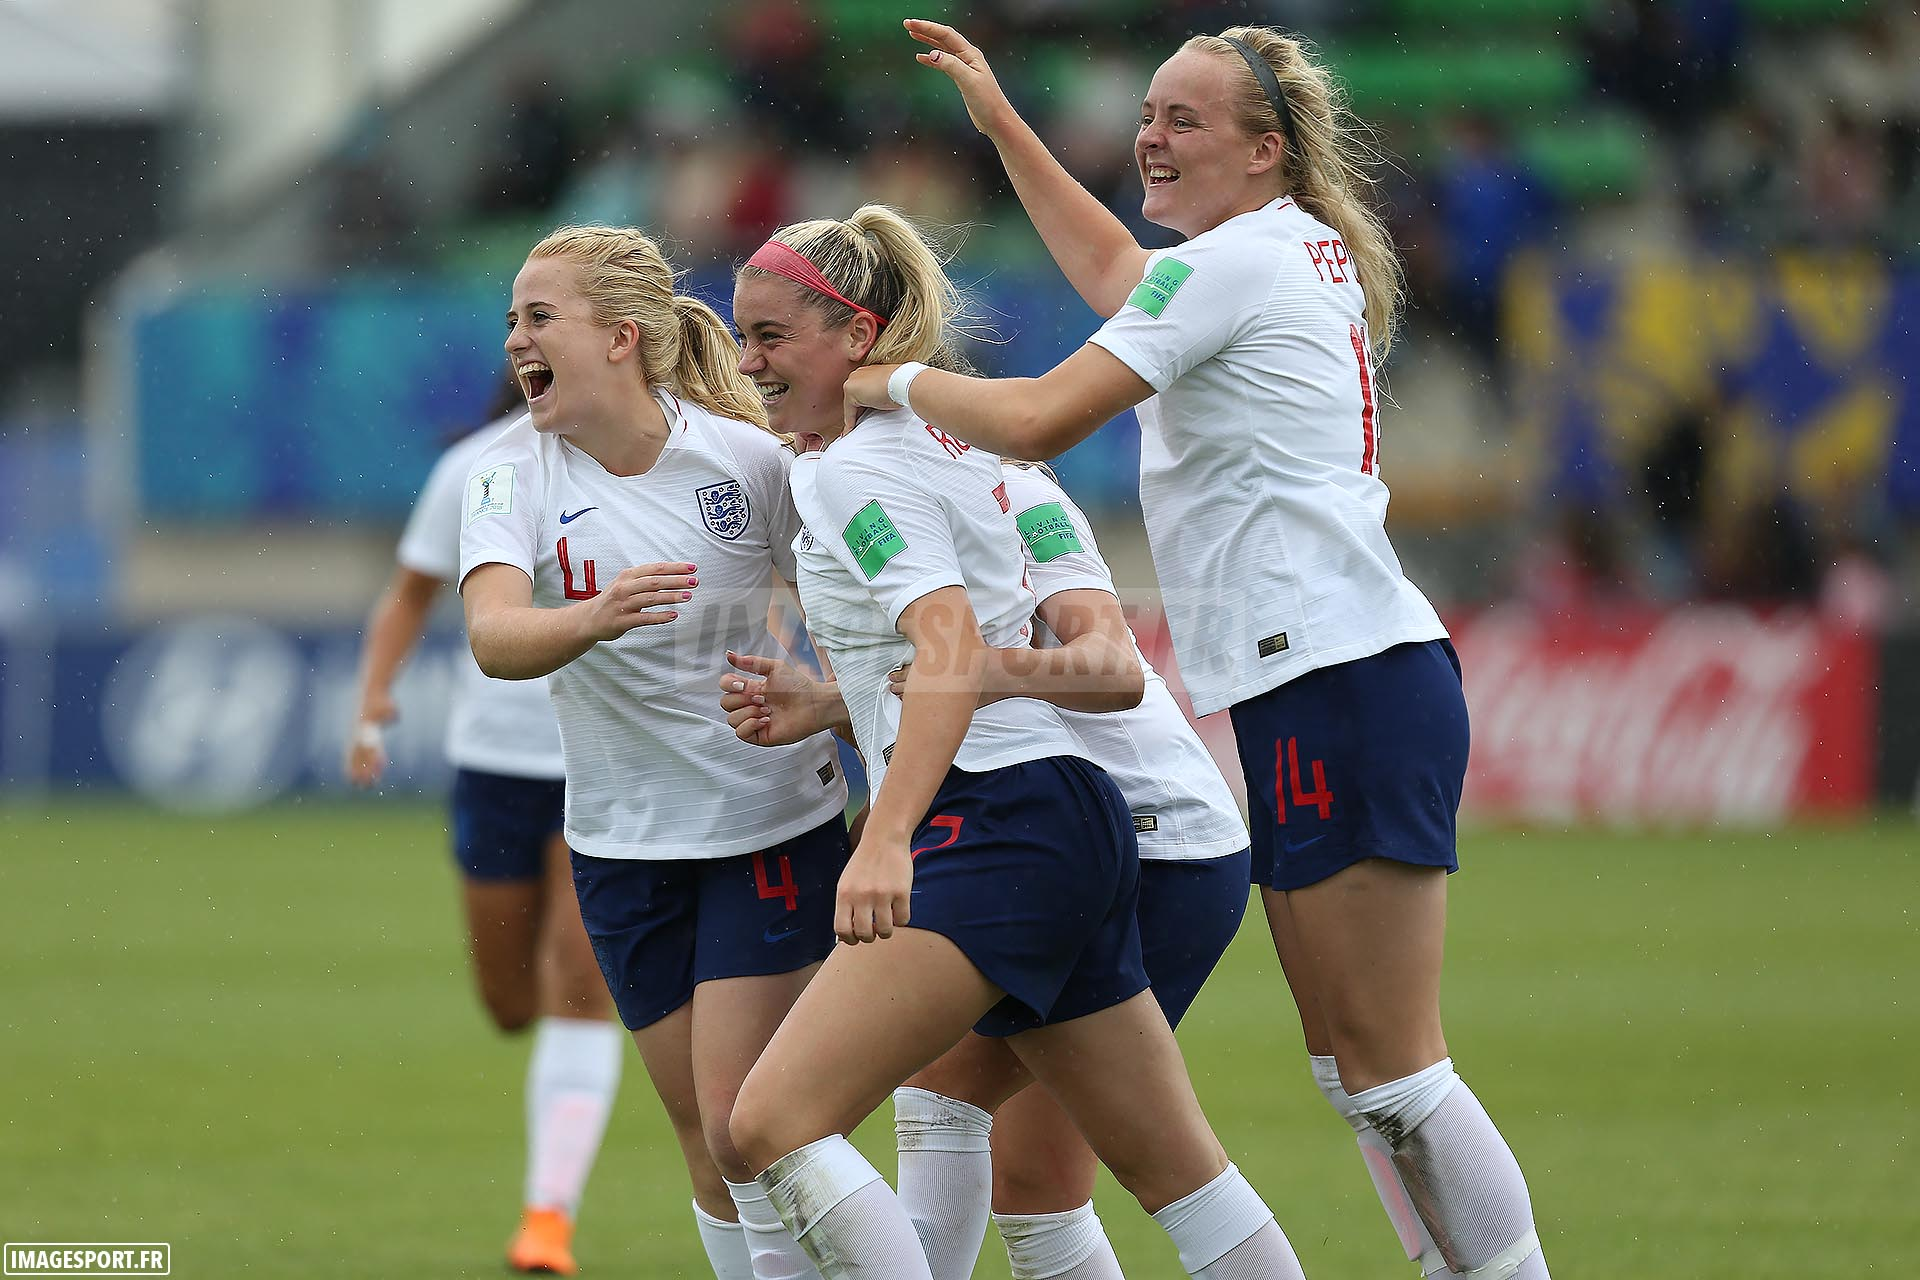 Mollie ROUSE (Angleterre) / Alessia RUSSO (Angleterre) / Chloe PEPLOW (Angleterre)